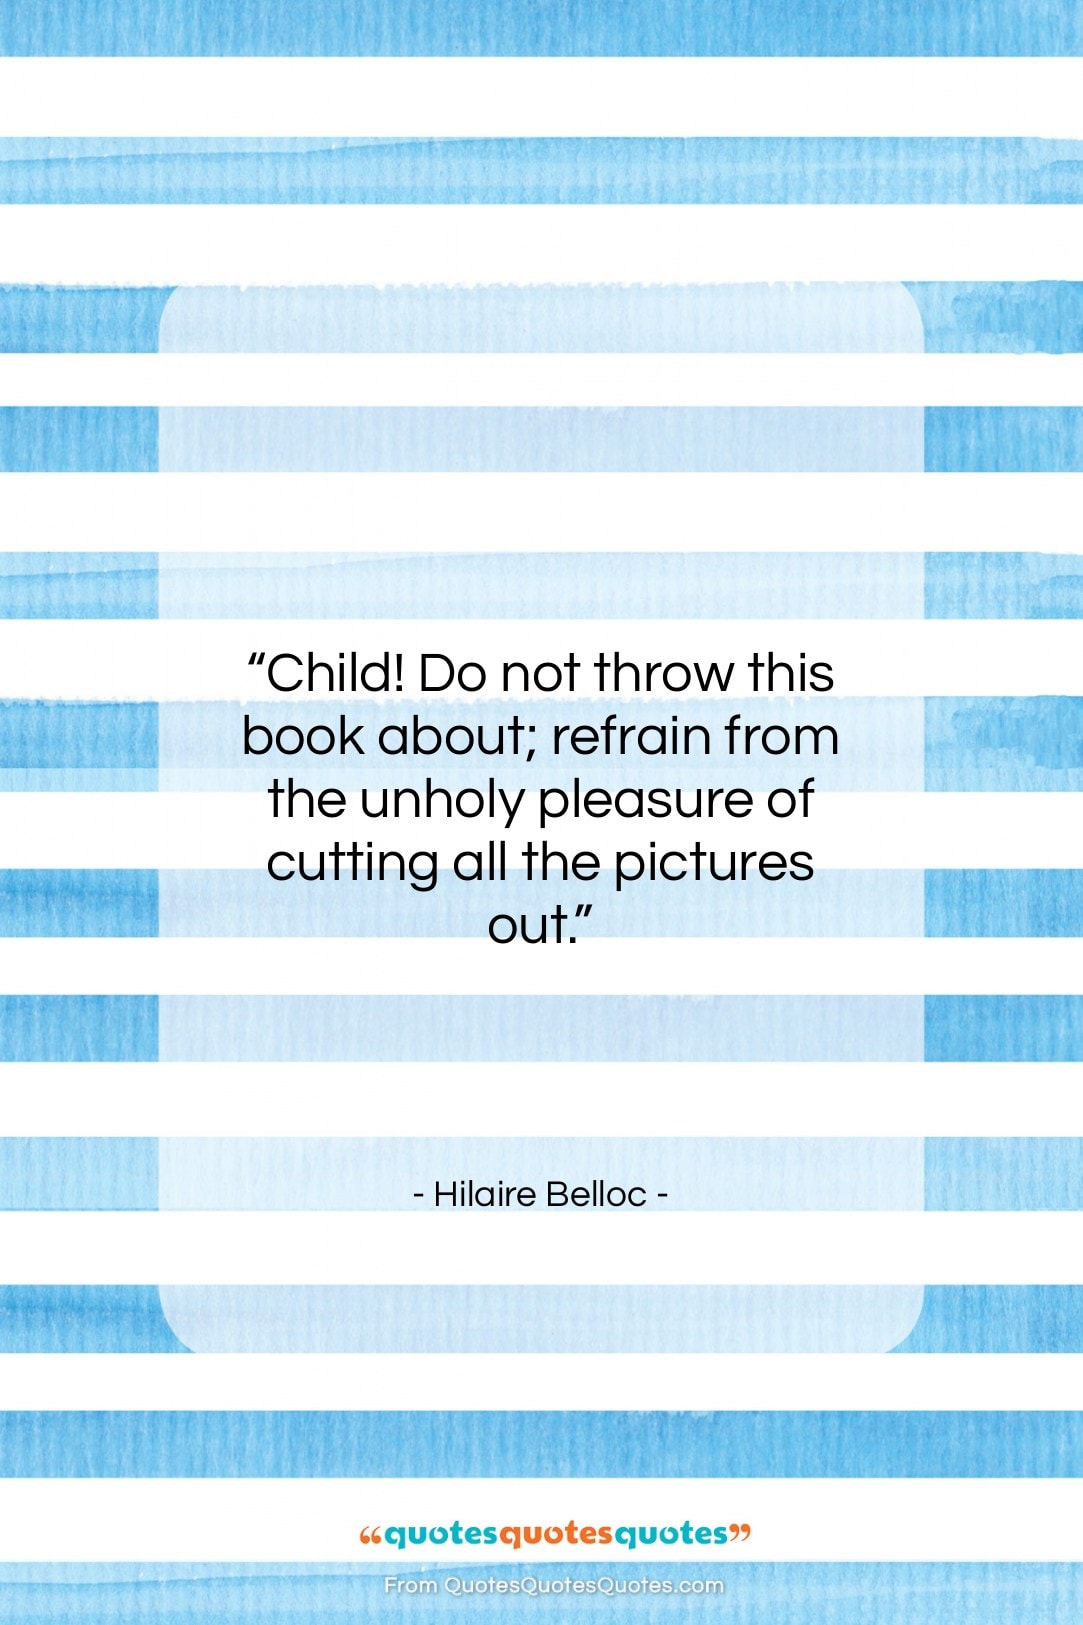 """Hilaire Belloc quote: """"Child! Do not throw this book about;…""""- at QuotesQuotesQuotes.com"""